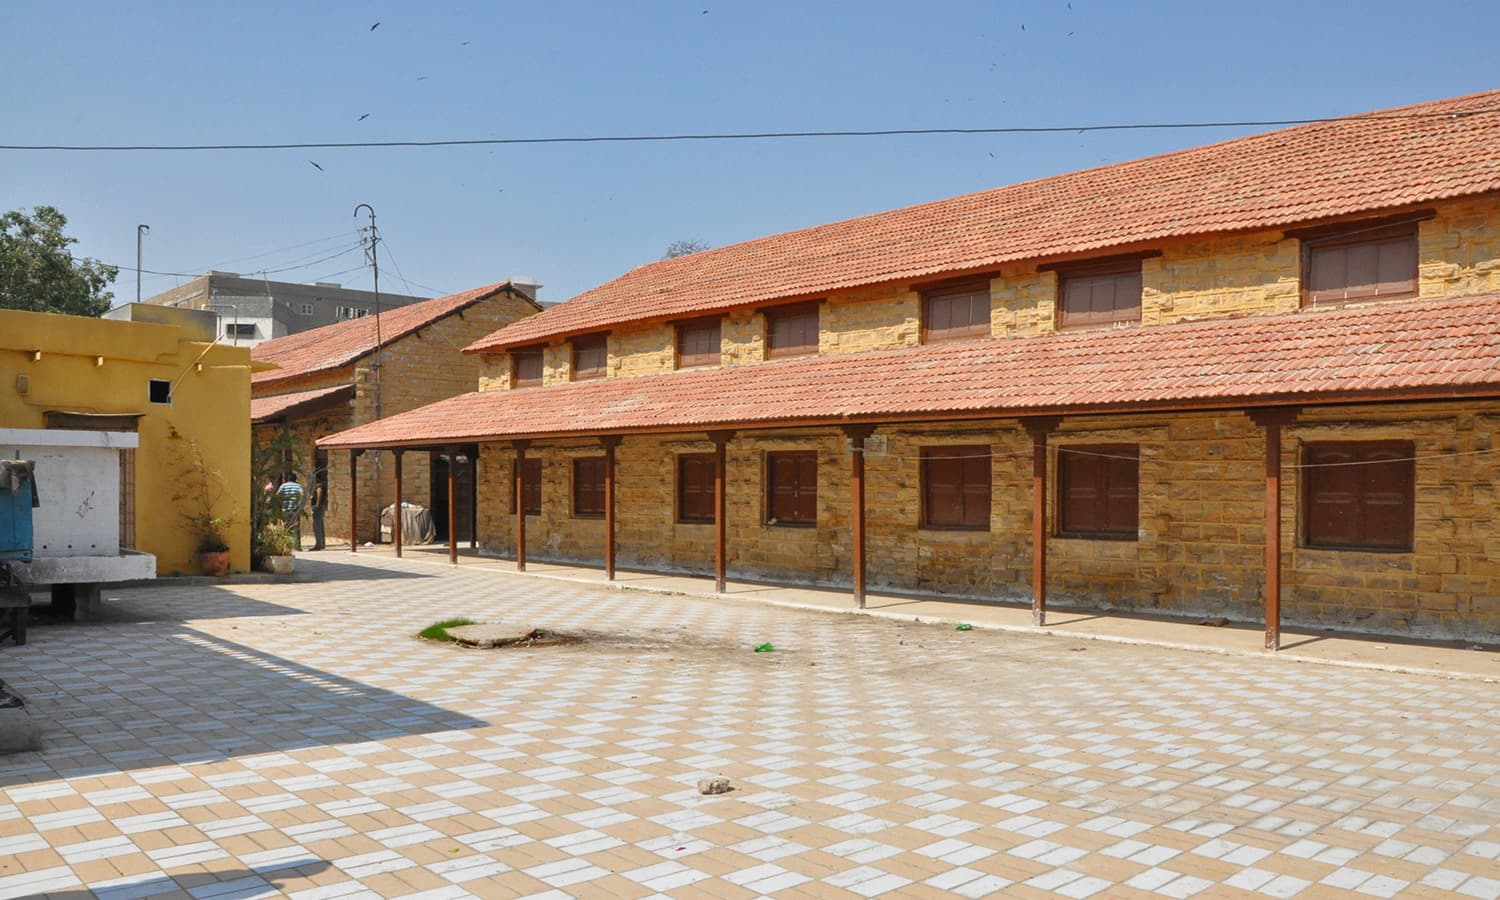 Some parts of the school have been renovated.